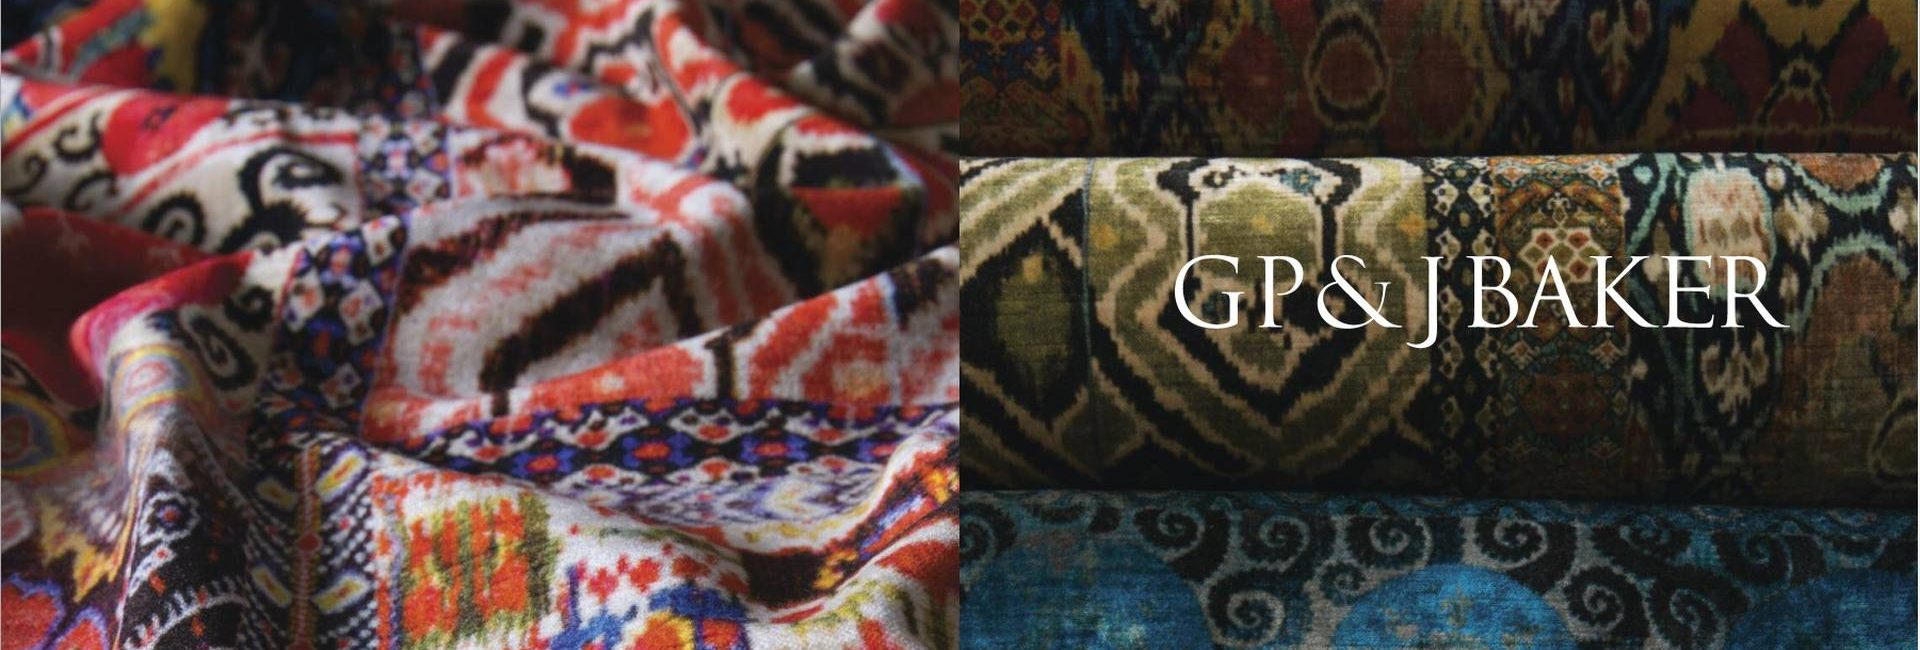 GP&J Baker East meets West collection of fabrics - available from Fabric Gallery and Interiors in Dunnington, York